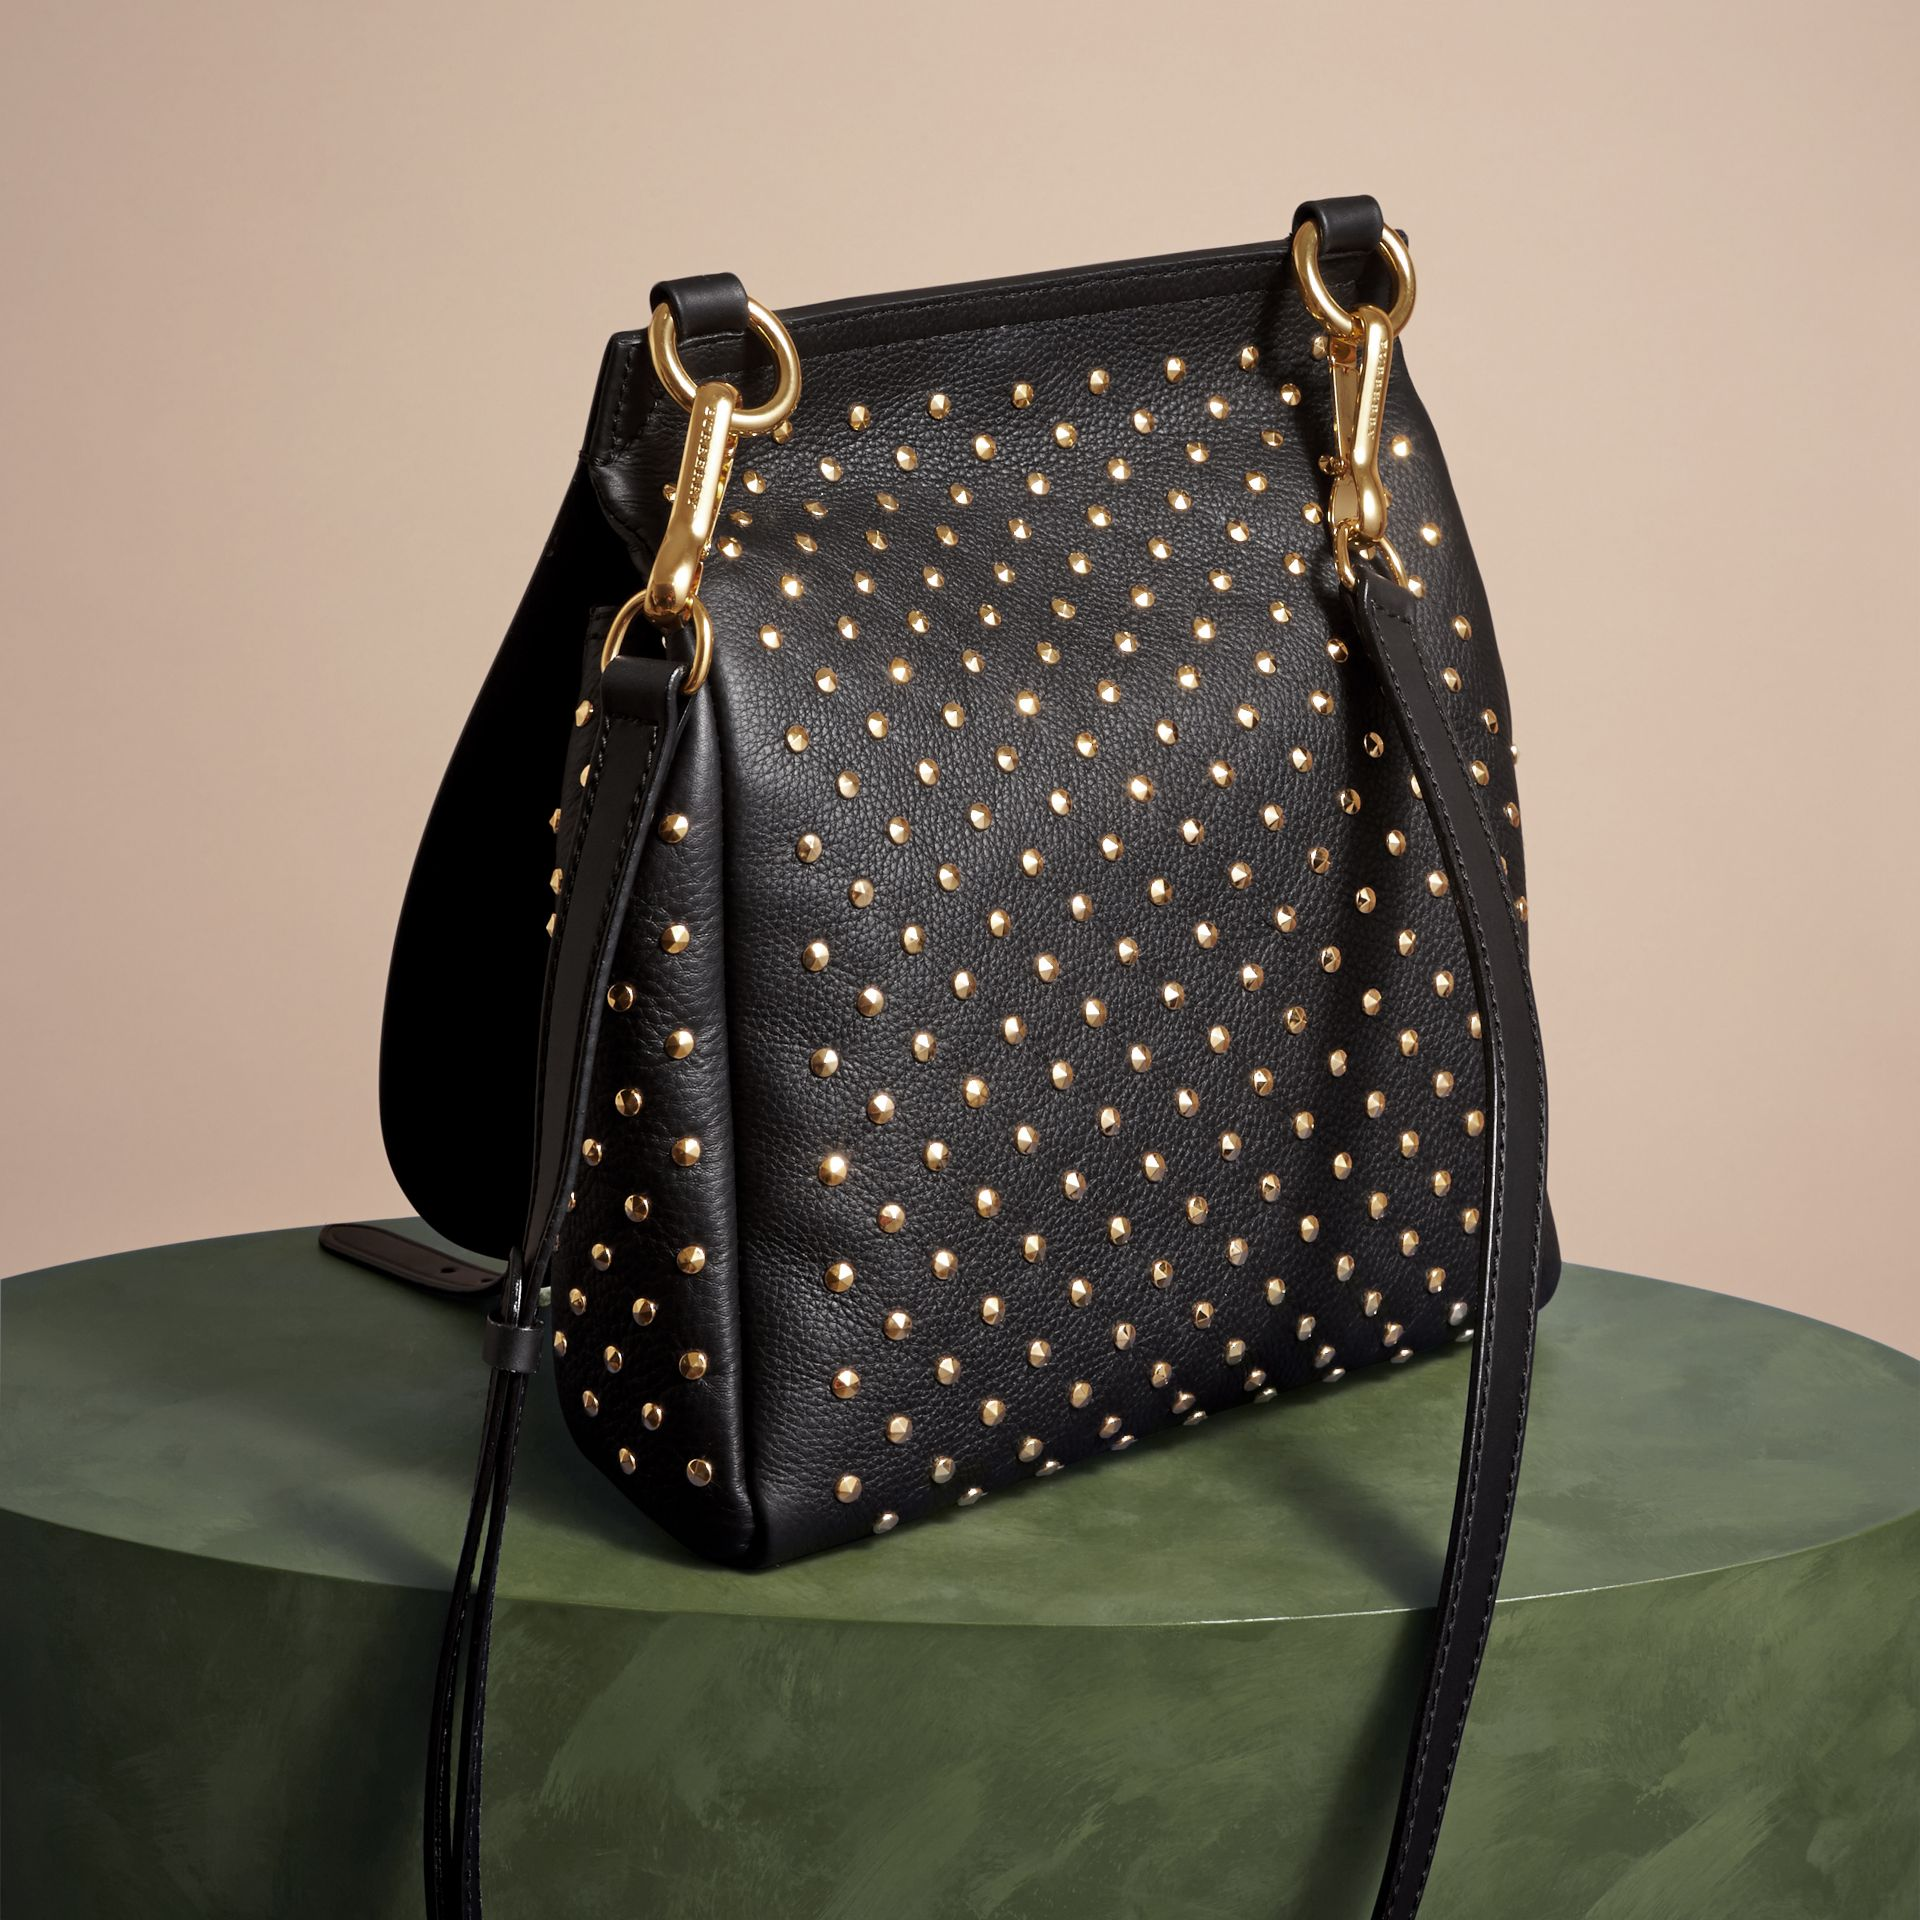 Noir Petit sac The Bridle en cuir à rivets - photo de la galerie 4